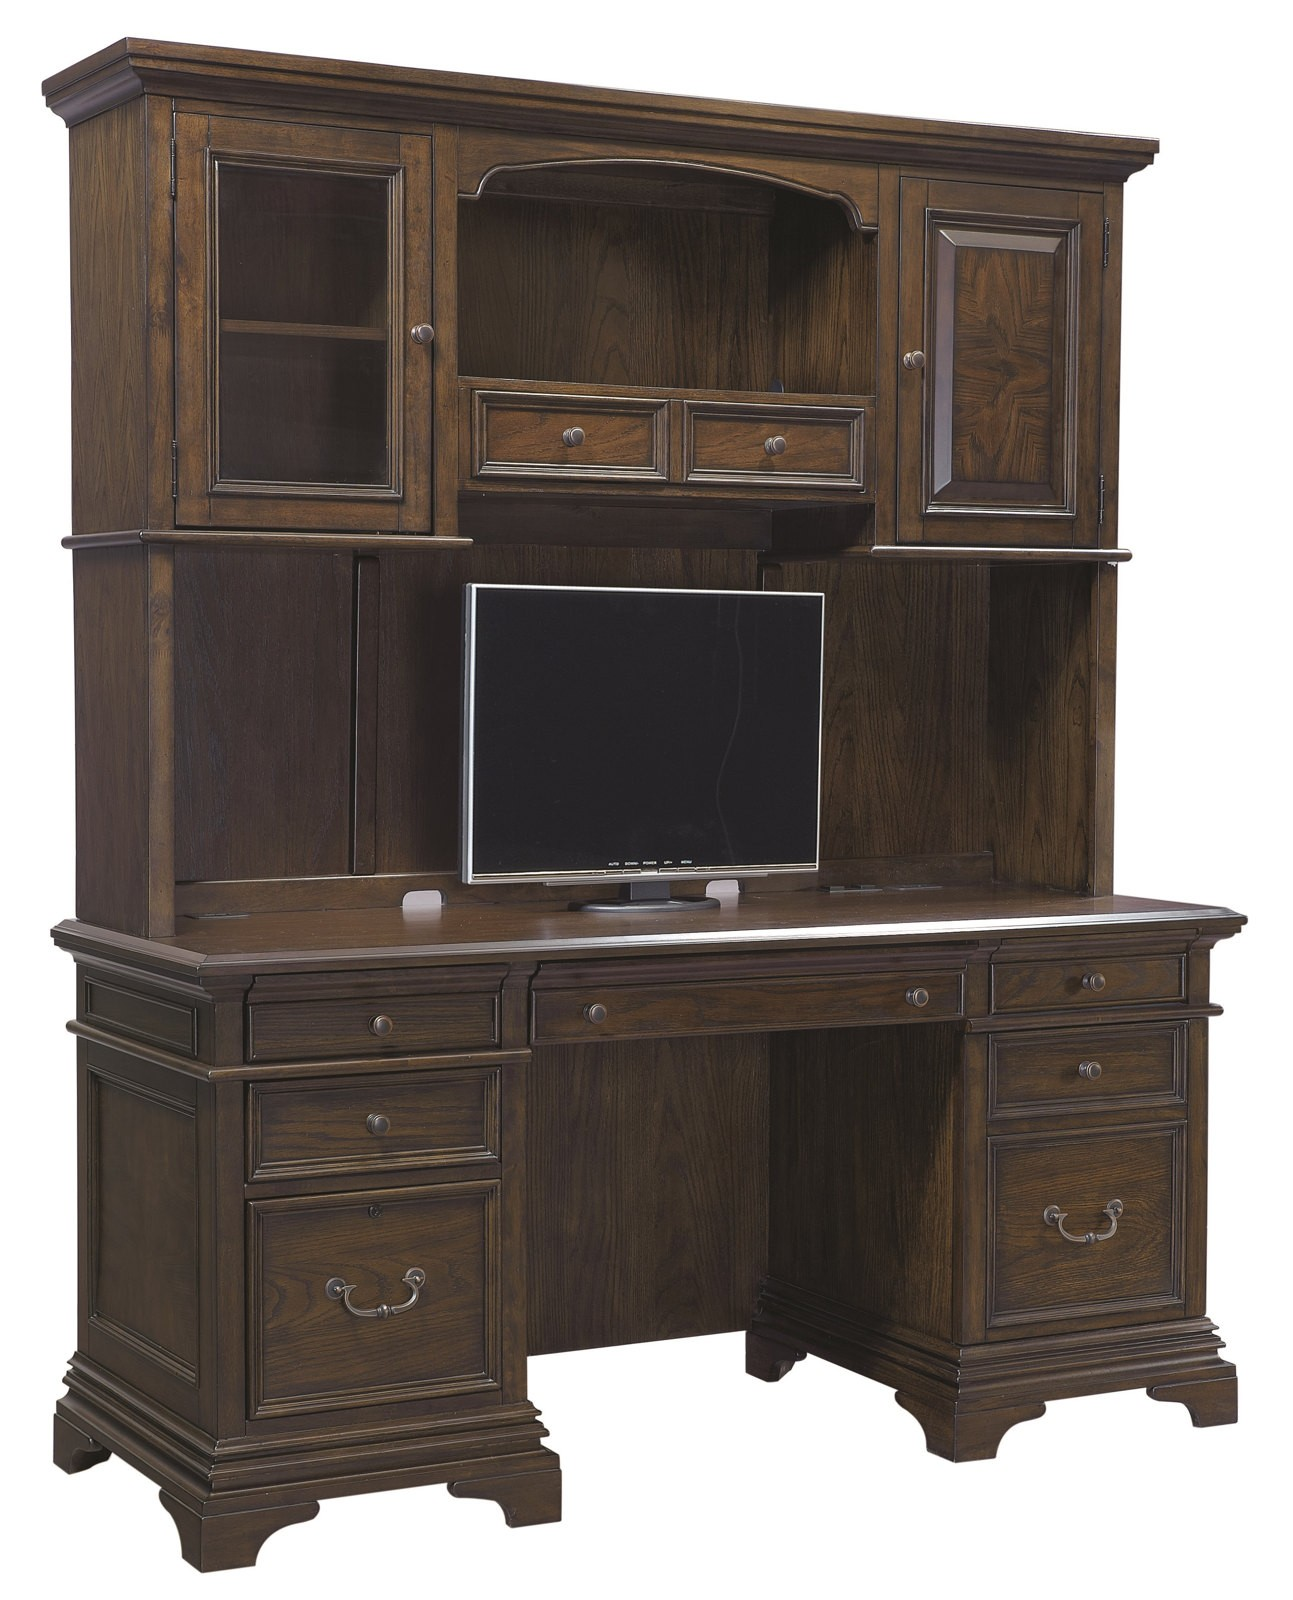 "Bedroom Credenza: Aspenhome Essex 66"" Credenza And Hutch In Molasses Brown"